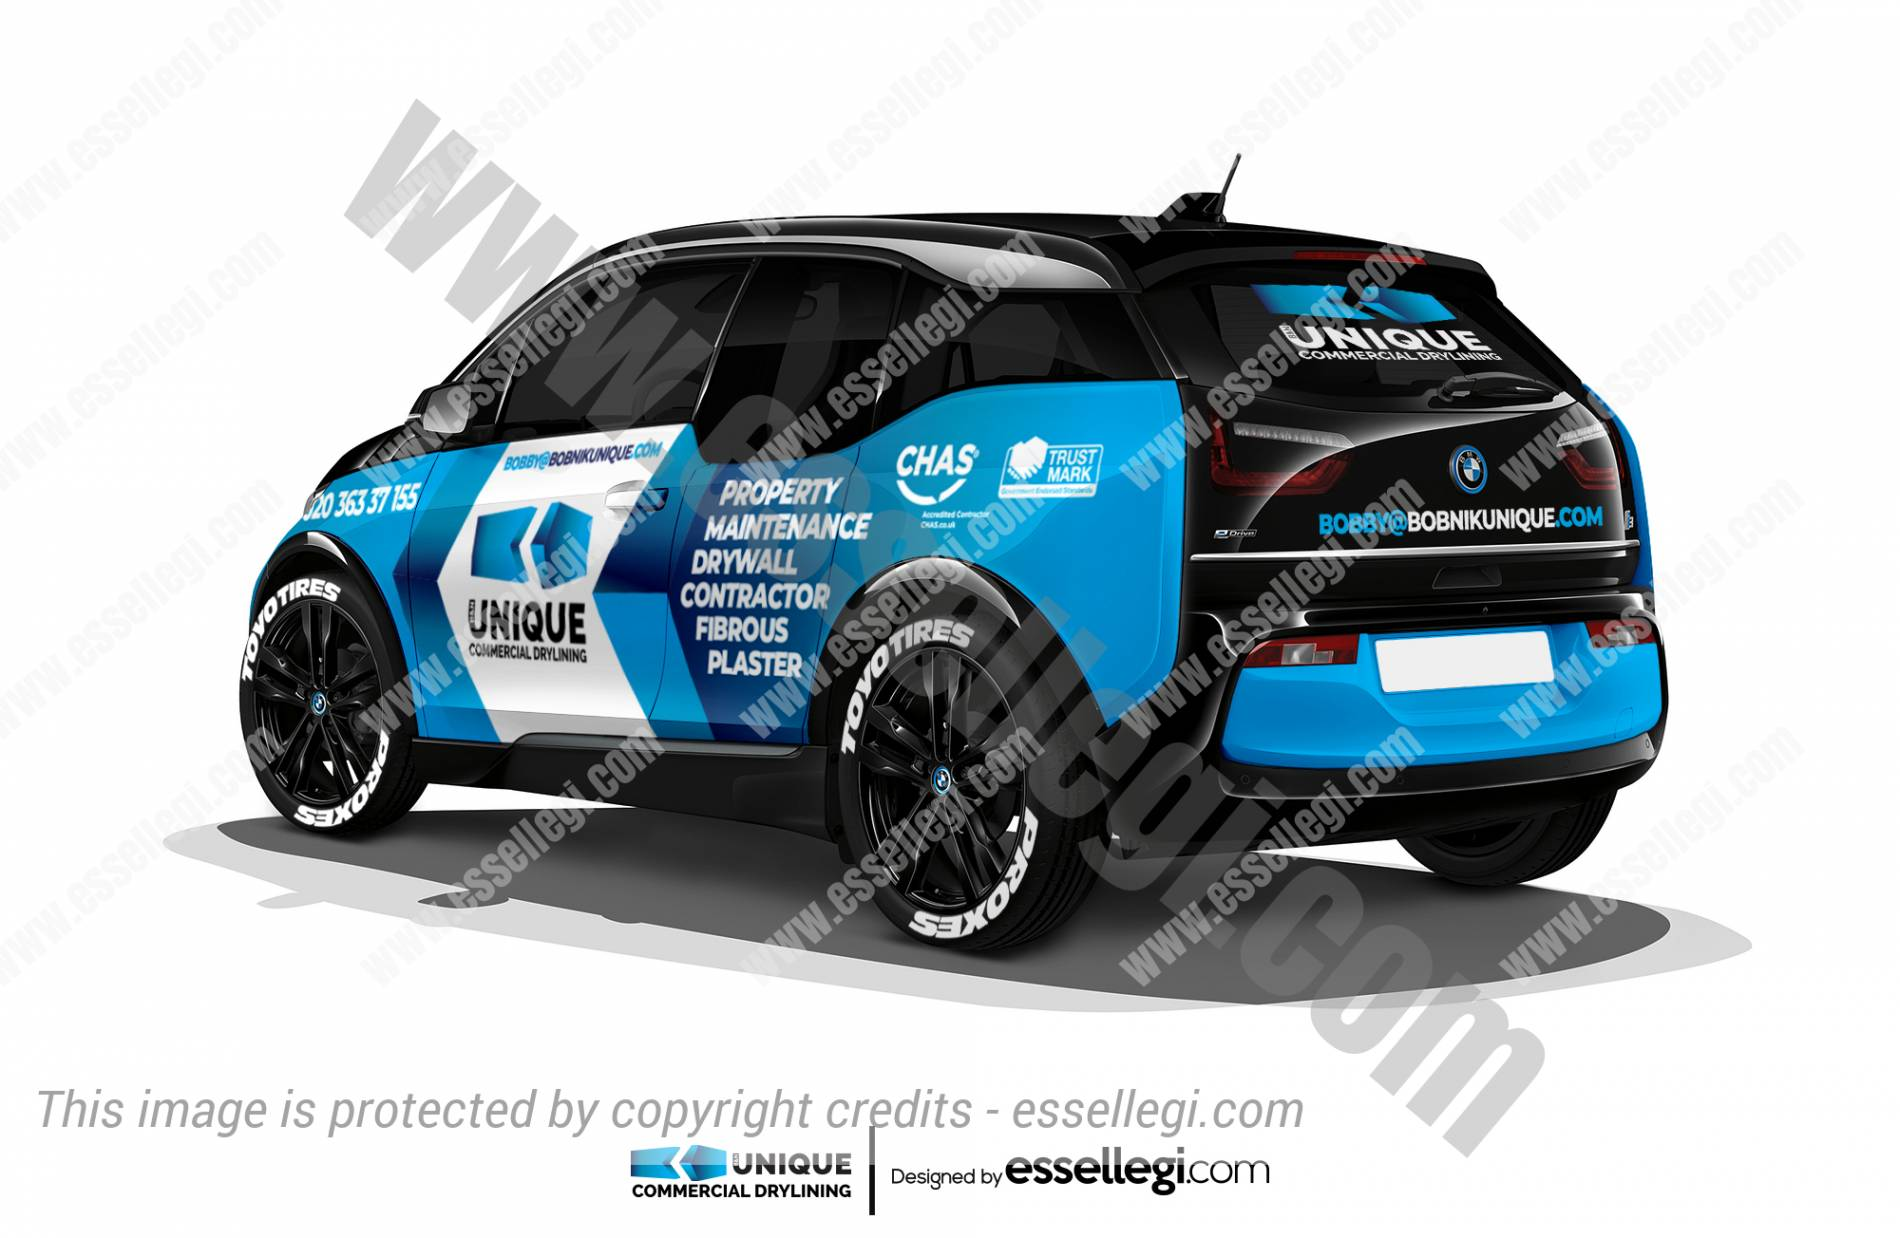 BMW i3 wrap. BMW i3 | Car Wrap Design by Essellegi. Car Signs, Car Signage, Car Signwriting, Car Wrap Designer, Car Graphic, Custom Vehicle Signage, Car Wrap Design by Essellegi.